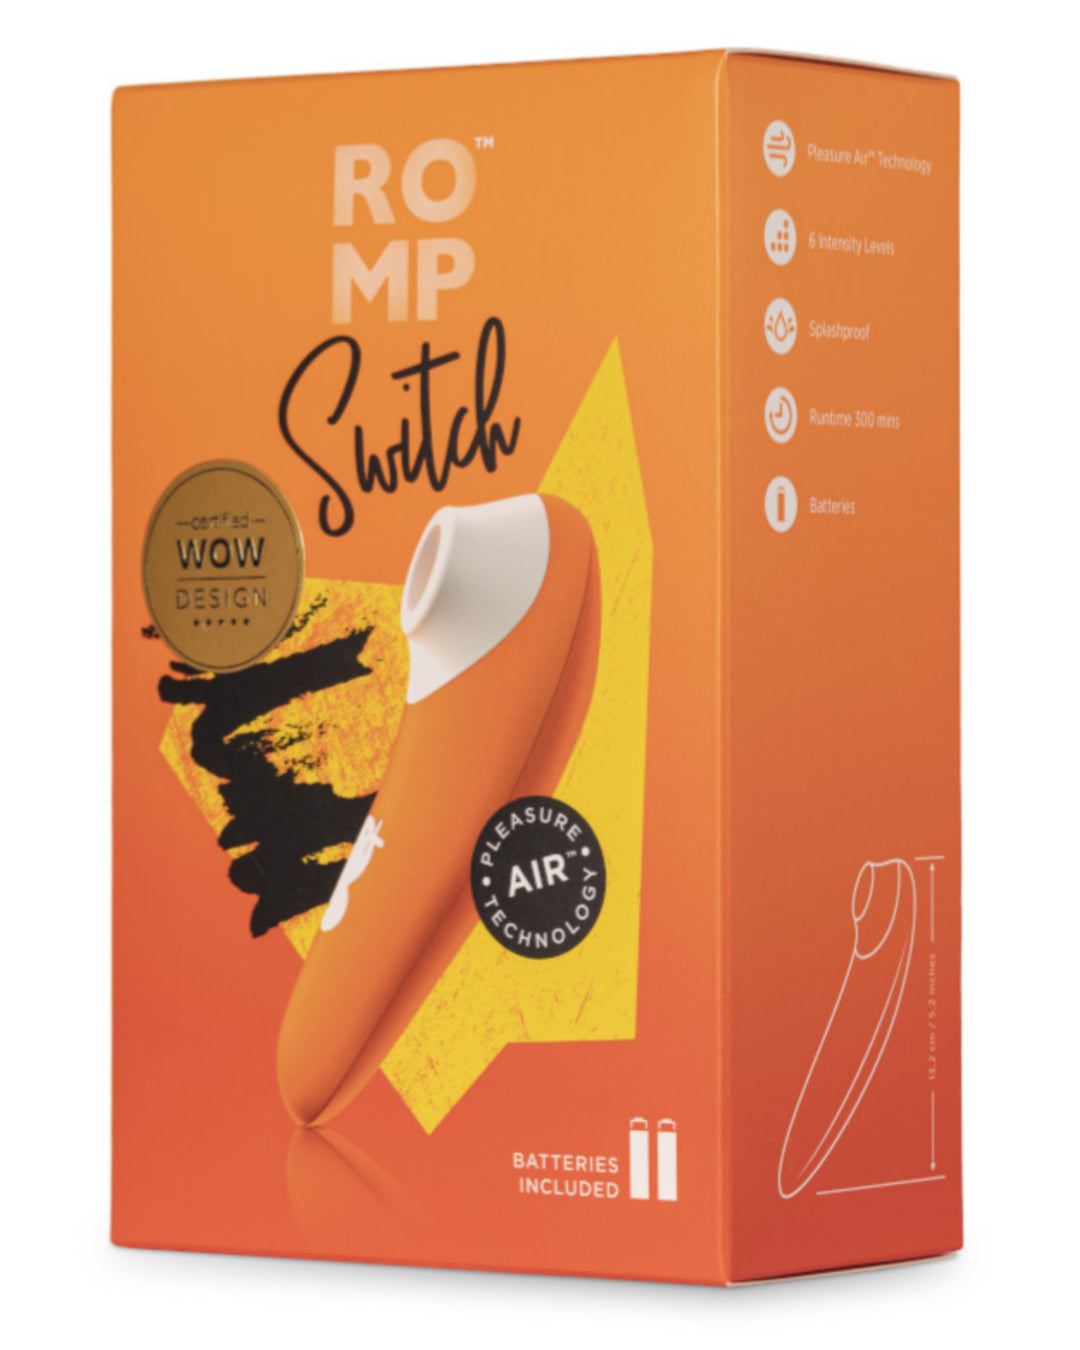 Romp Switch Pleasure Air Clitoral Stimulator - Orange